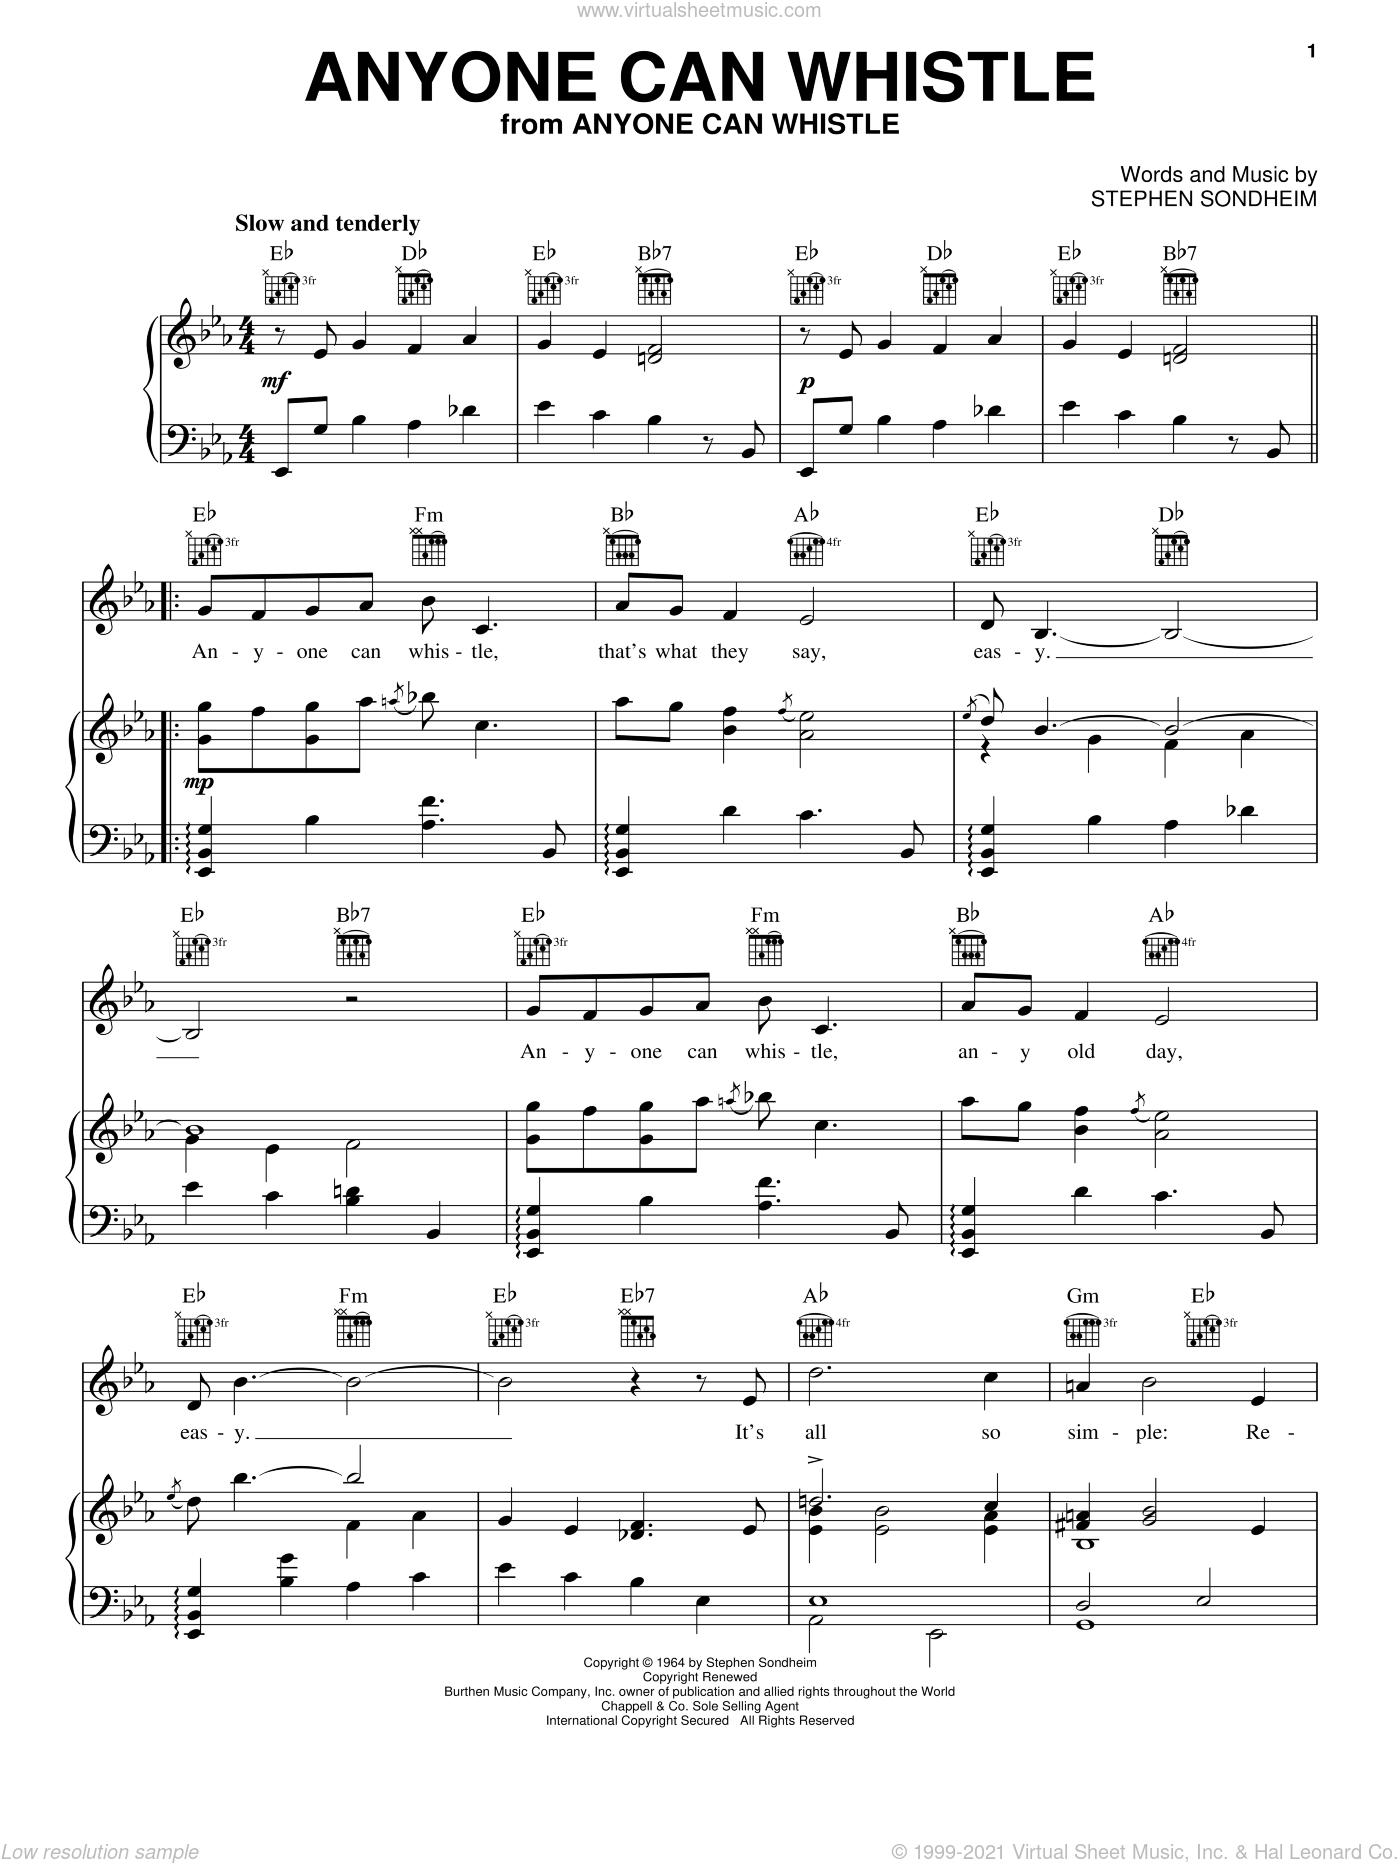 Anyone Can Whistle sheet music for voice, piano or guitar by Stephen Sondheim, intermediate skill level